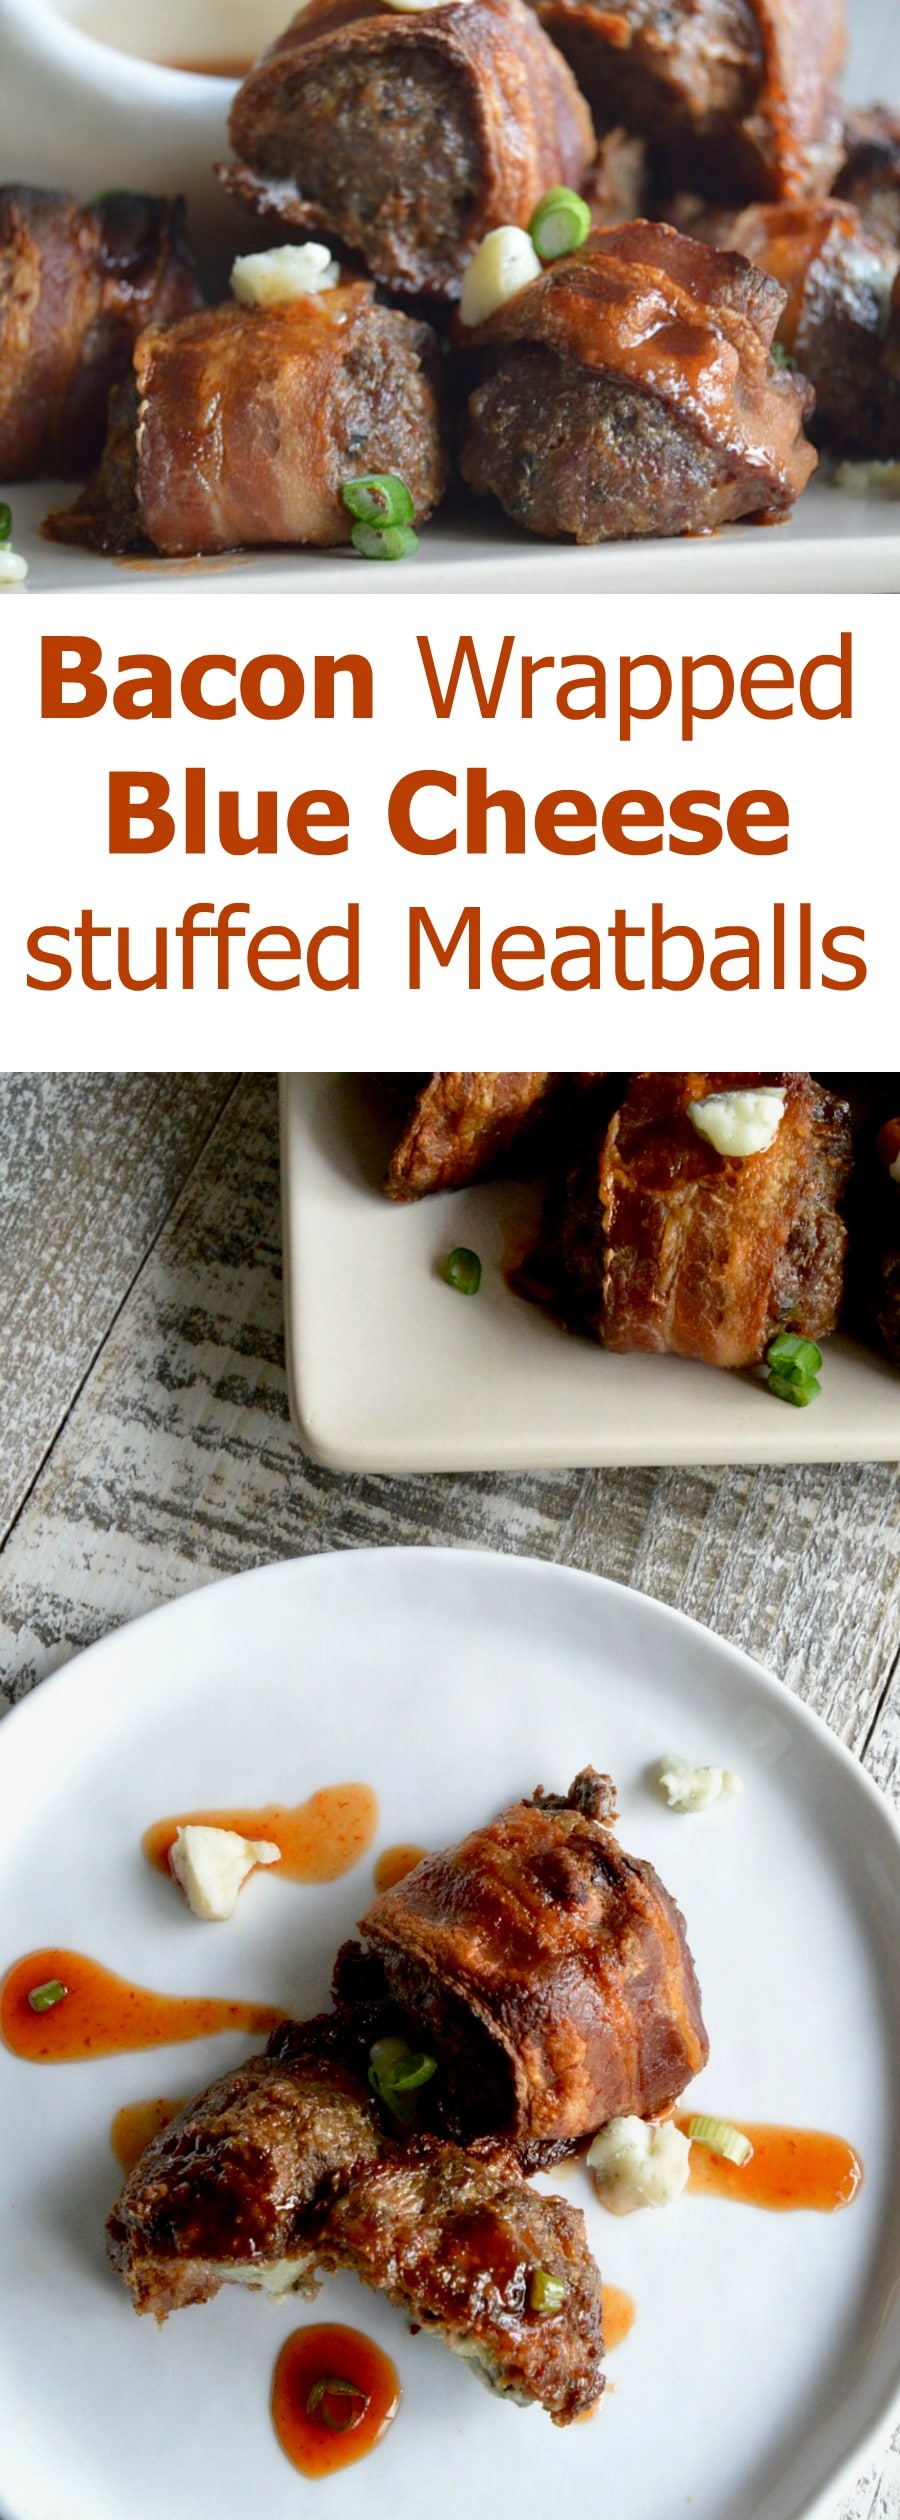 Bacon Wrapped Blue Cheese meatballs |Appetizer| Partyfood|